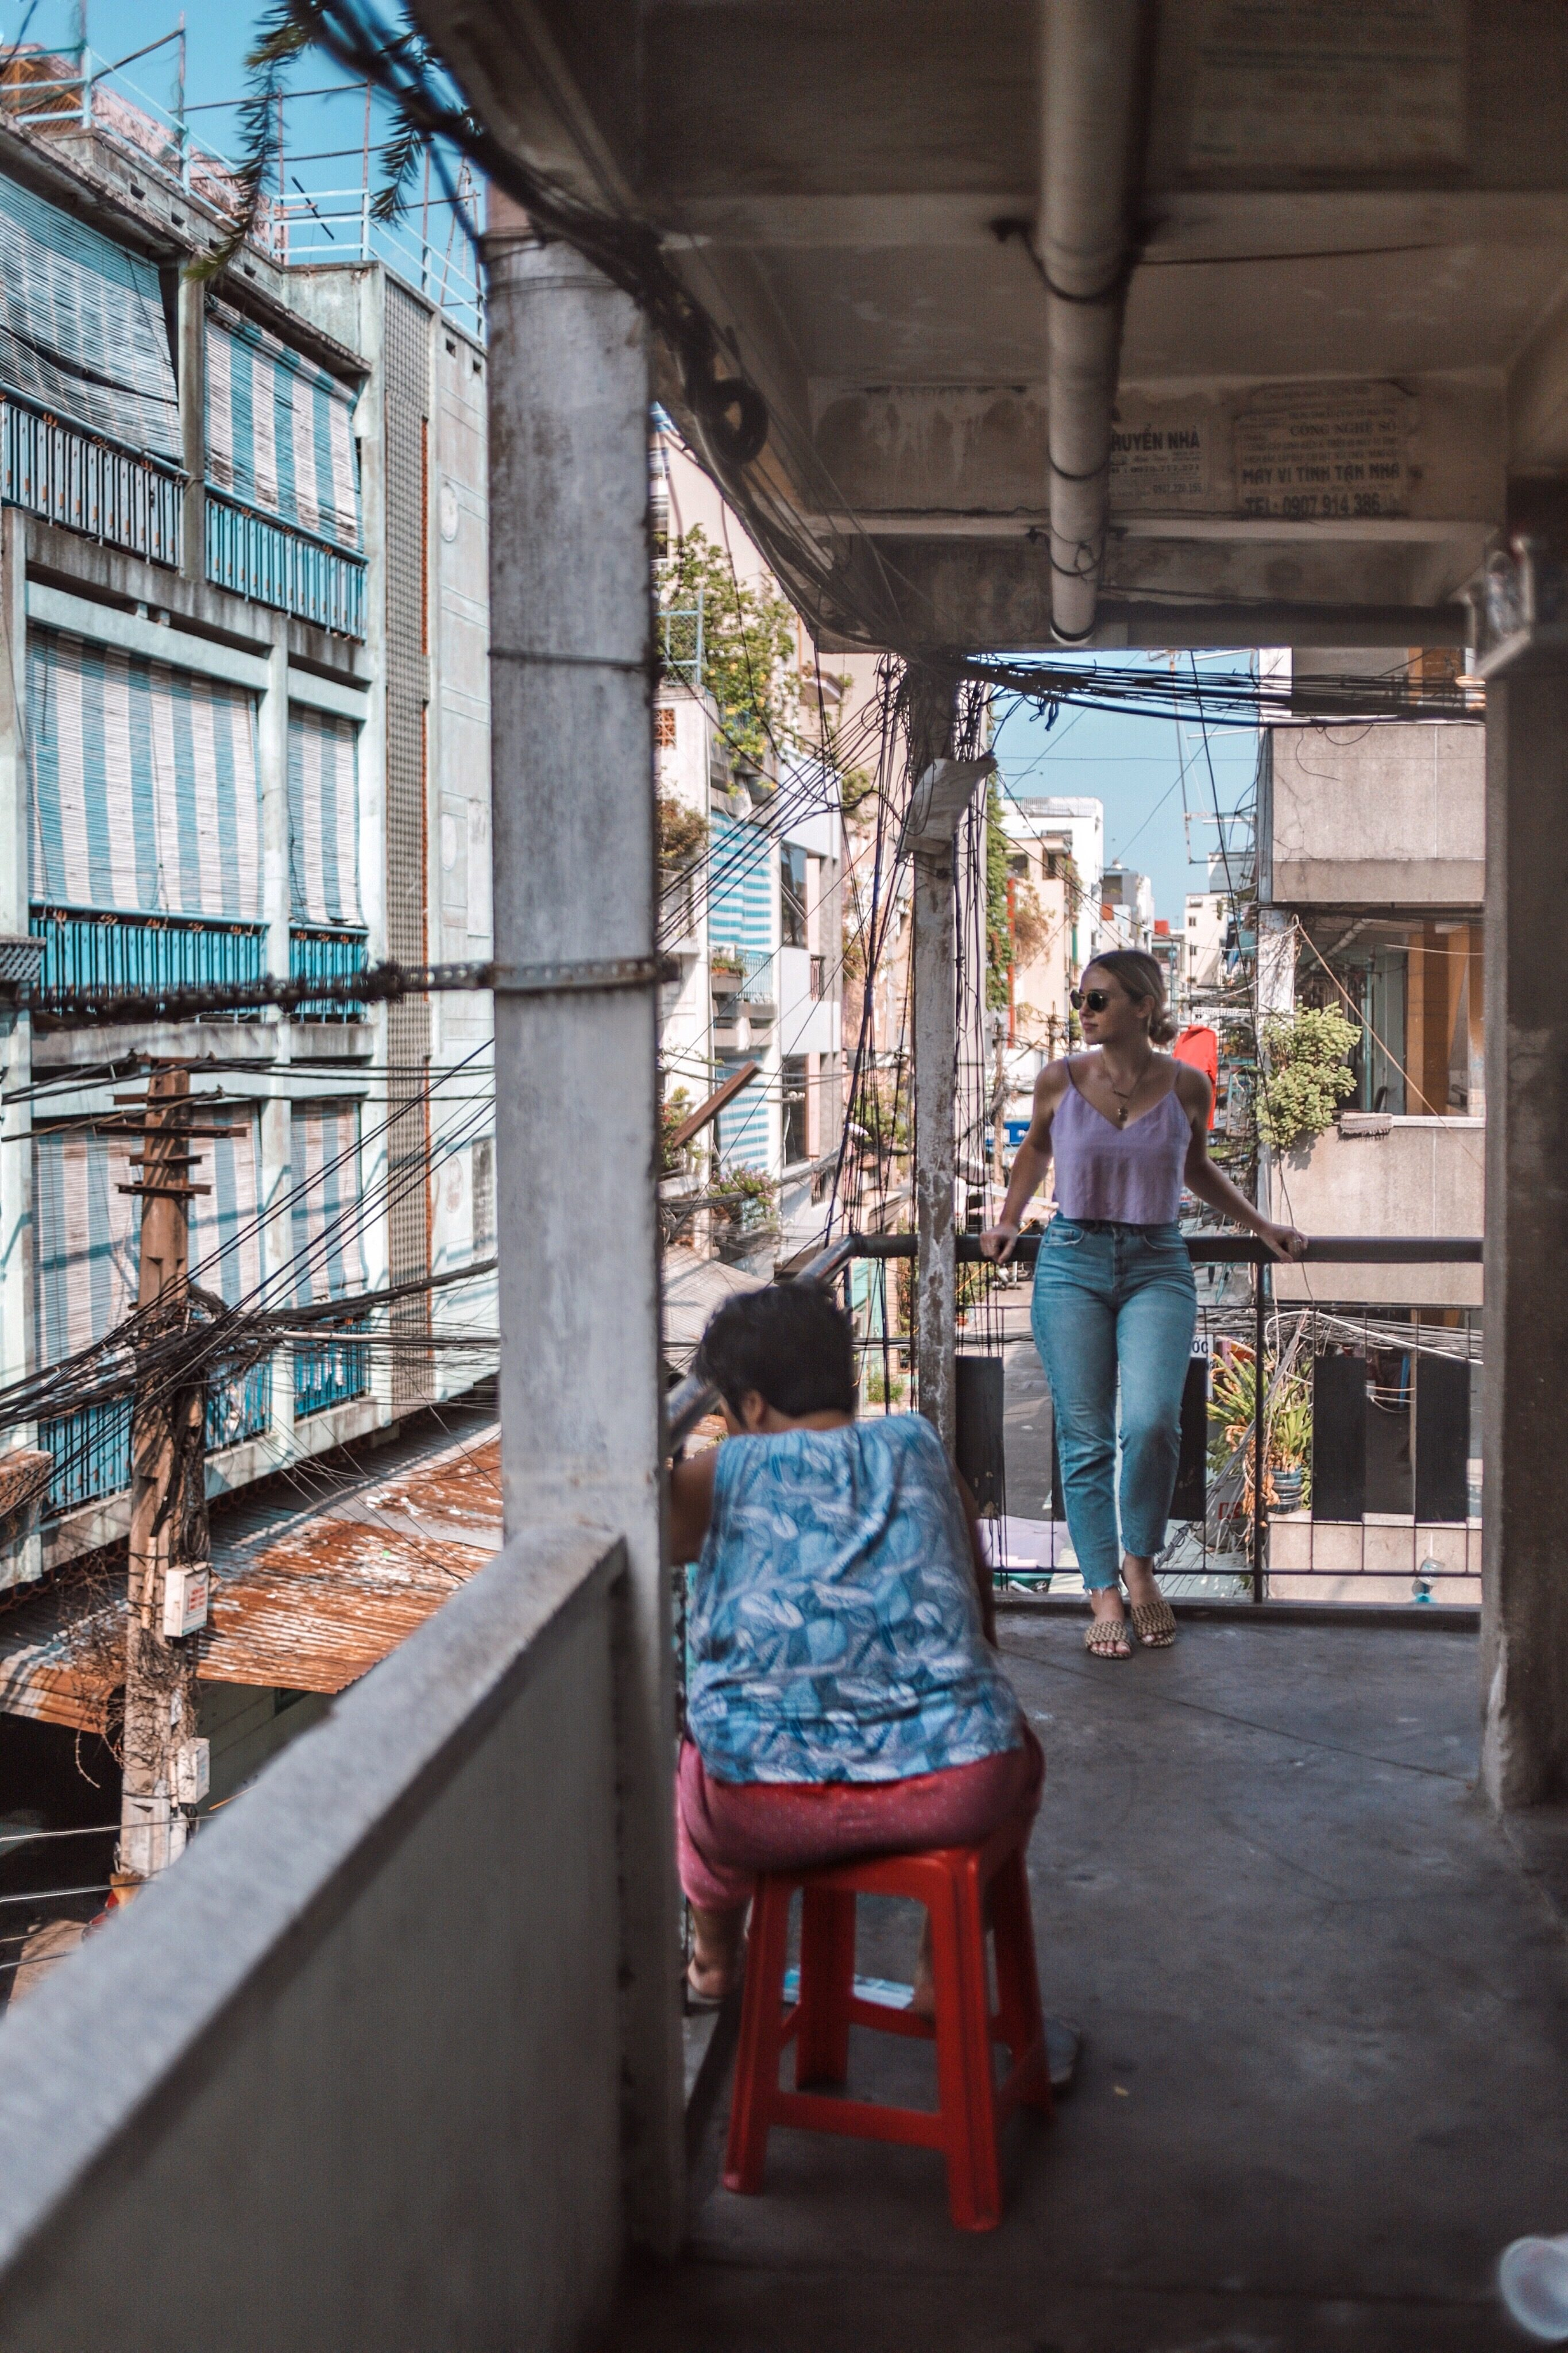 The Charming Streets of Saigon: A Street Photography Collection